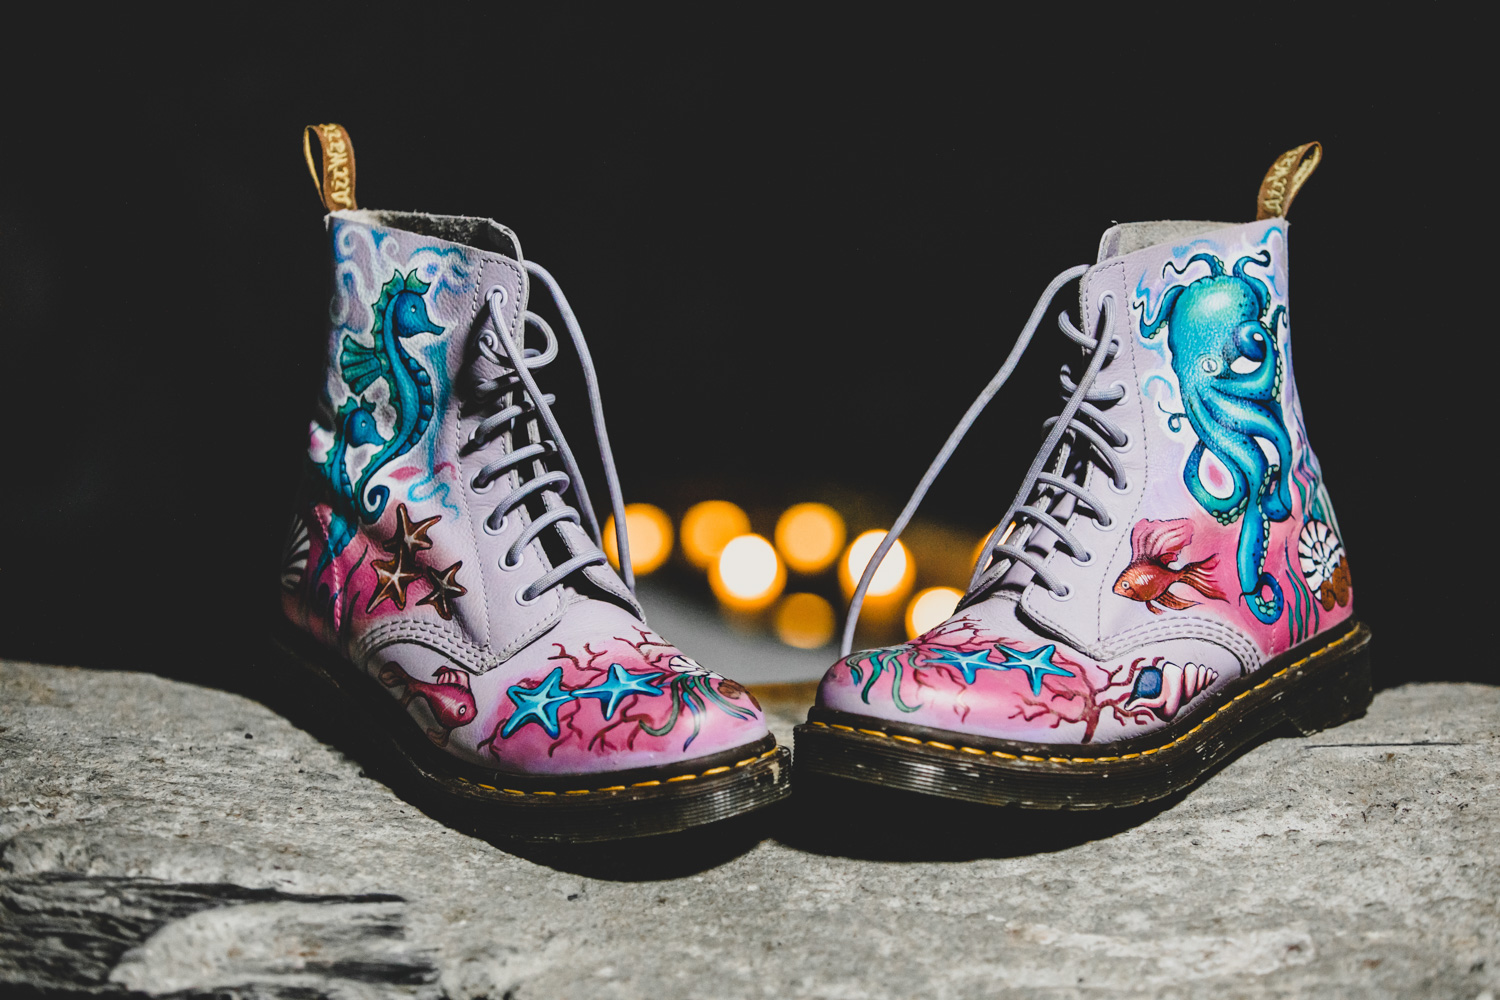 hand painted dr martens - hand painted wedding shoes - bespoke wedding shoes